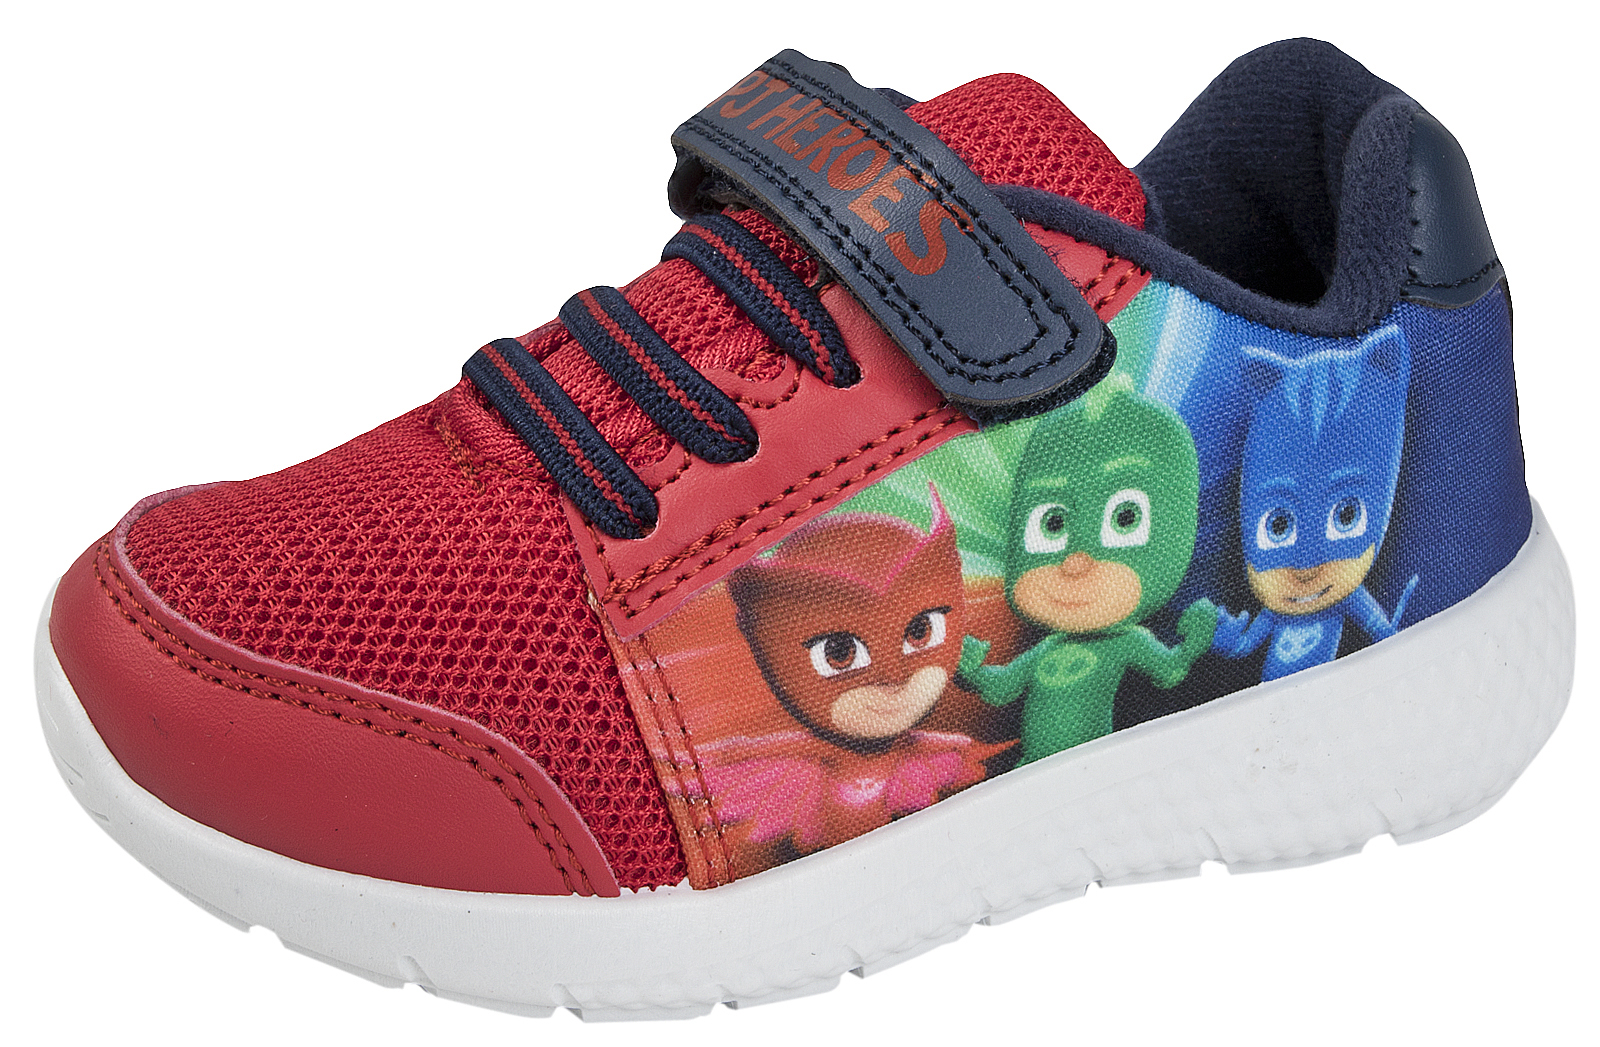 Details about  /Kids Character Trainers Boys Girls Summer School Holiday Gym Sports Shoes Size